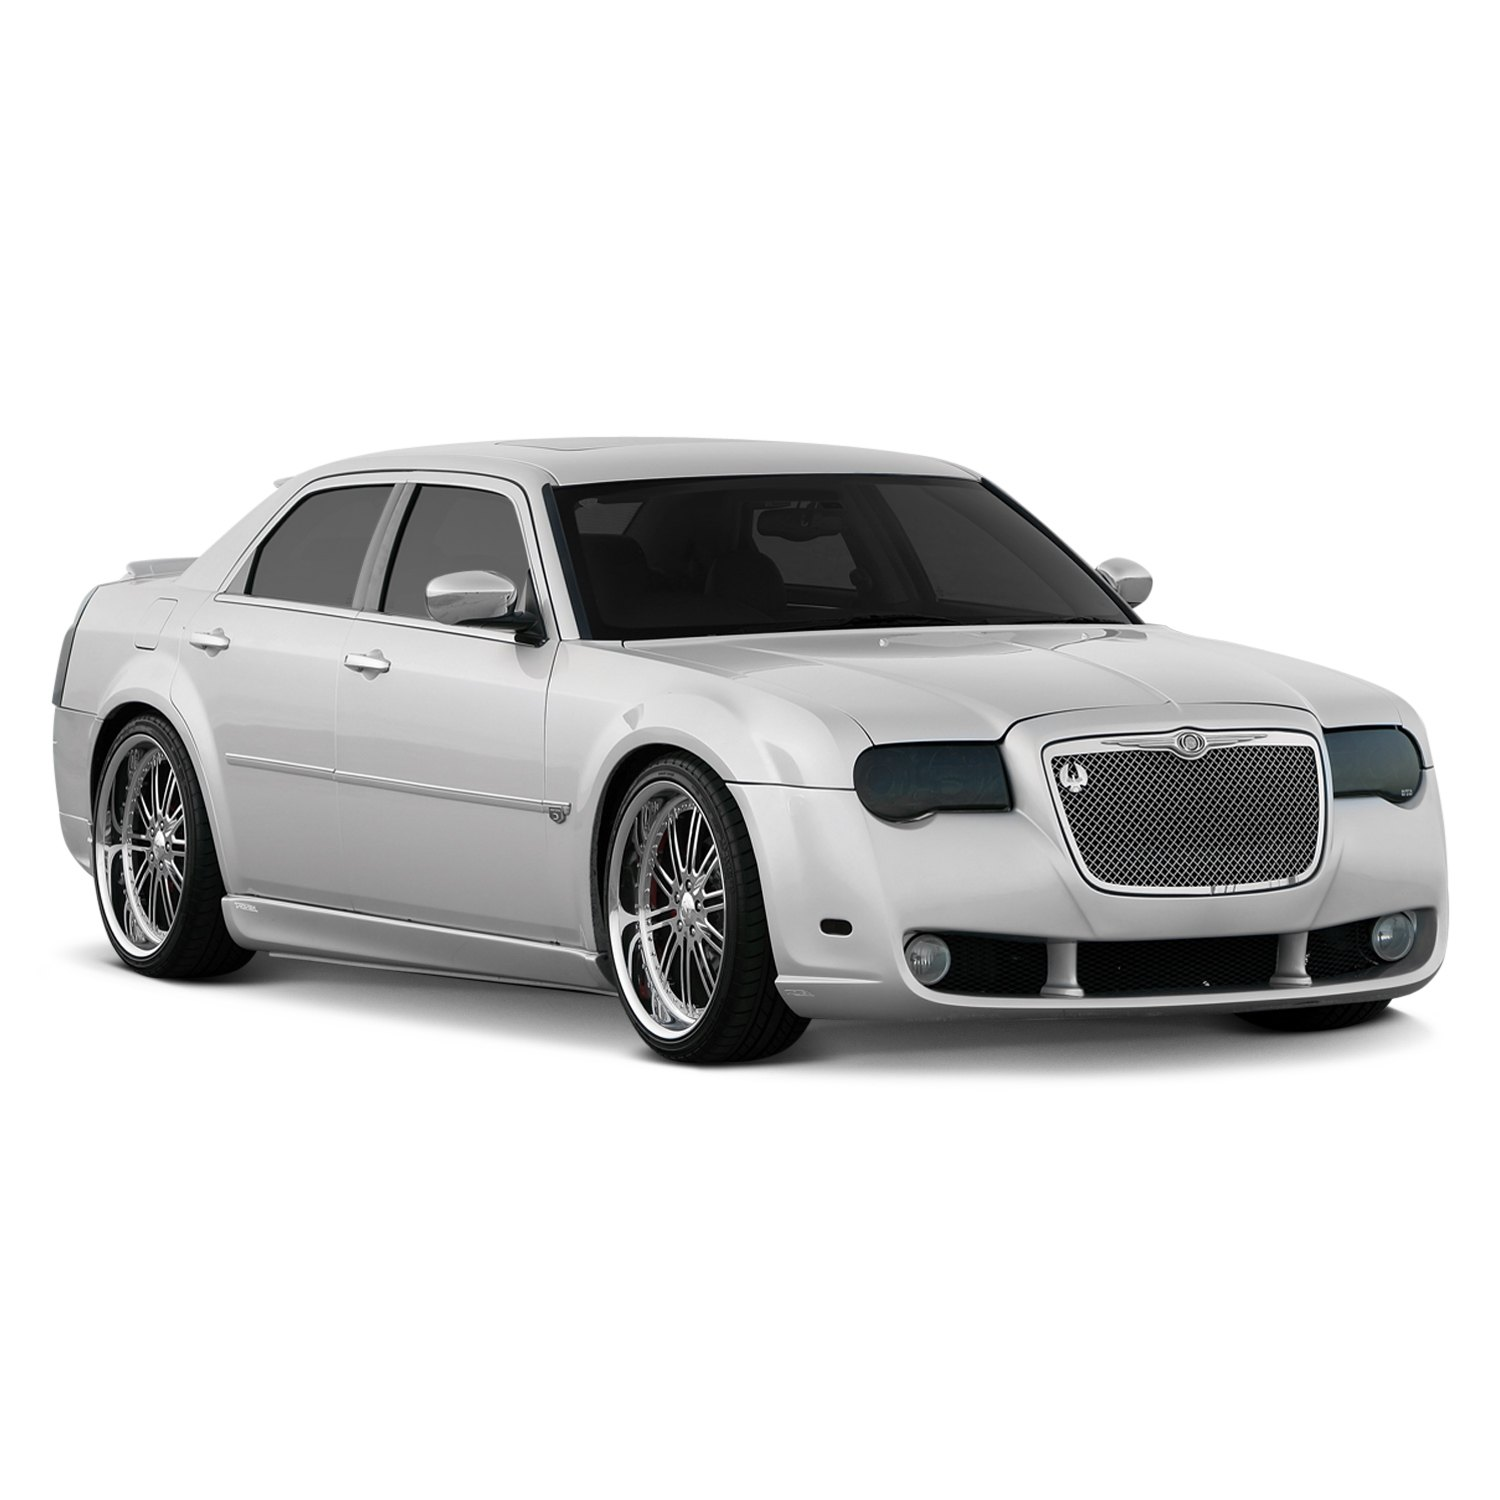 Chrysler 300 2005-2007 Body Kit